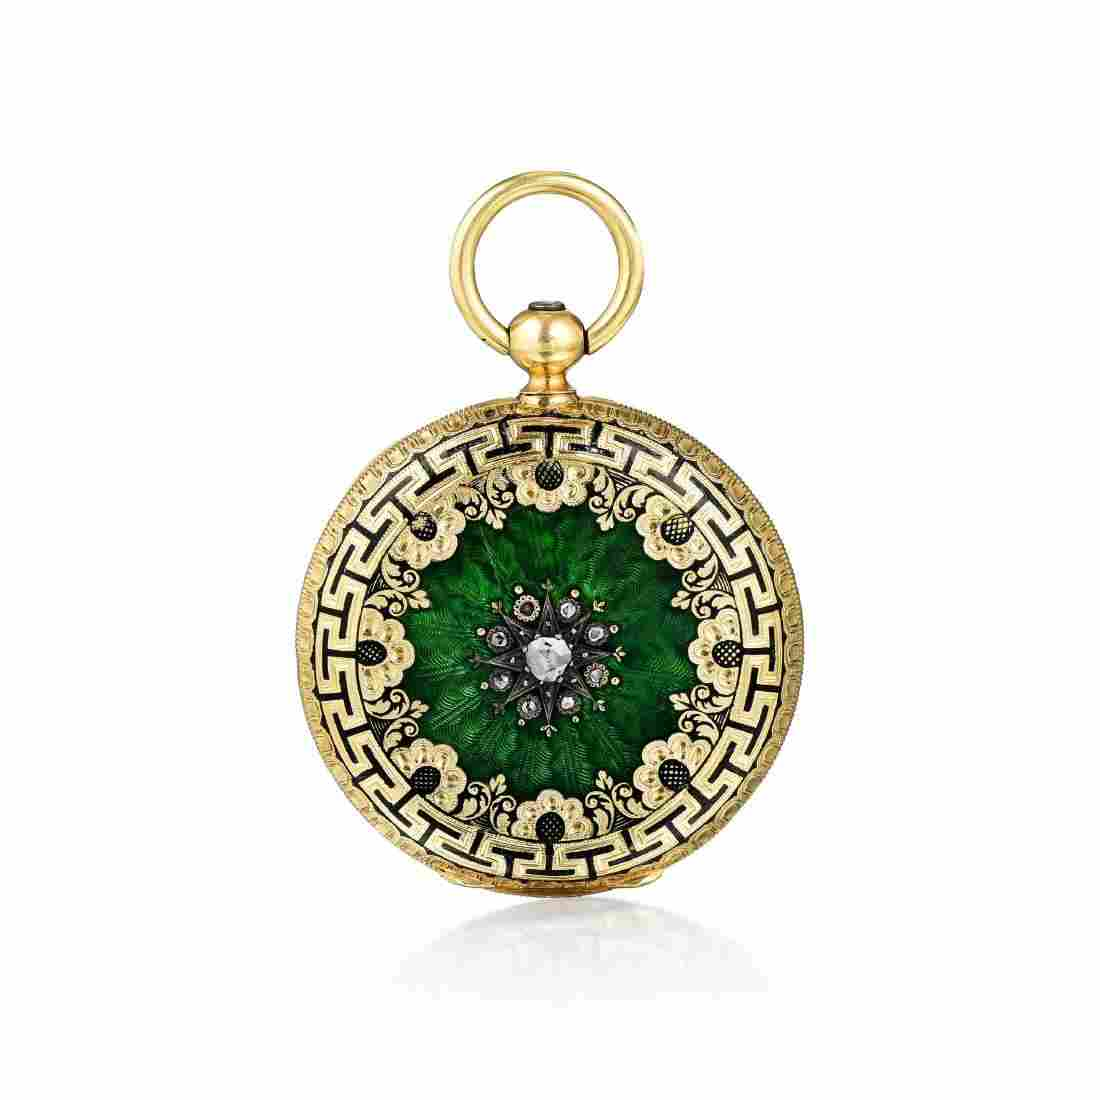 Antique 18K Gold Diamond and Enamel Gent's Pocket Watch